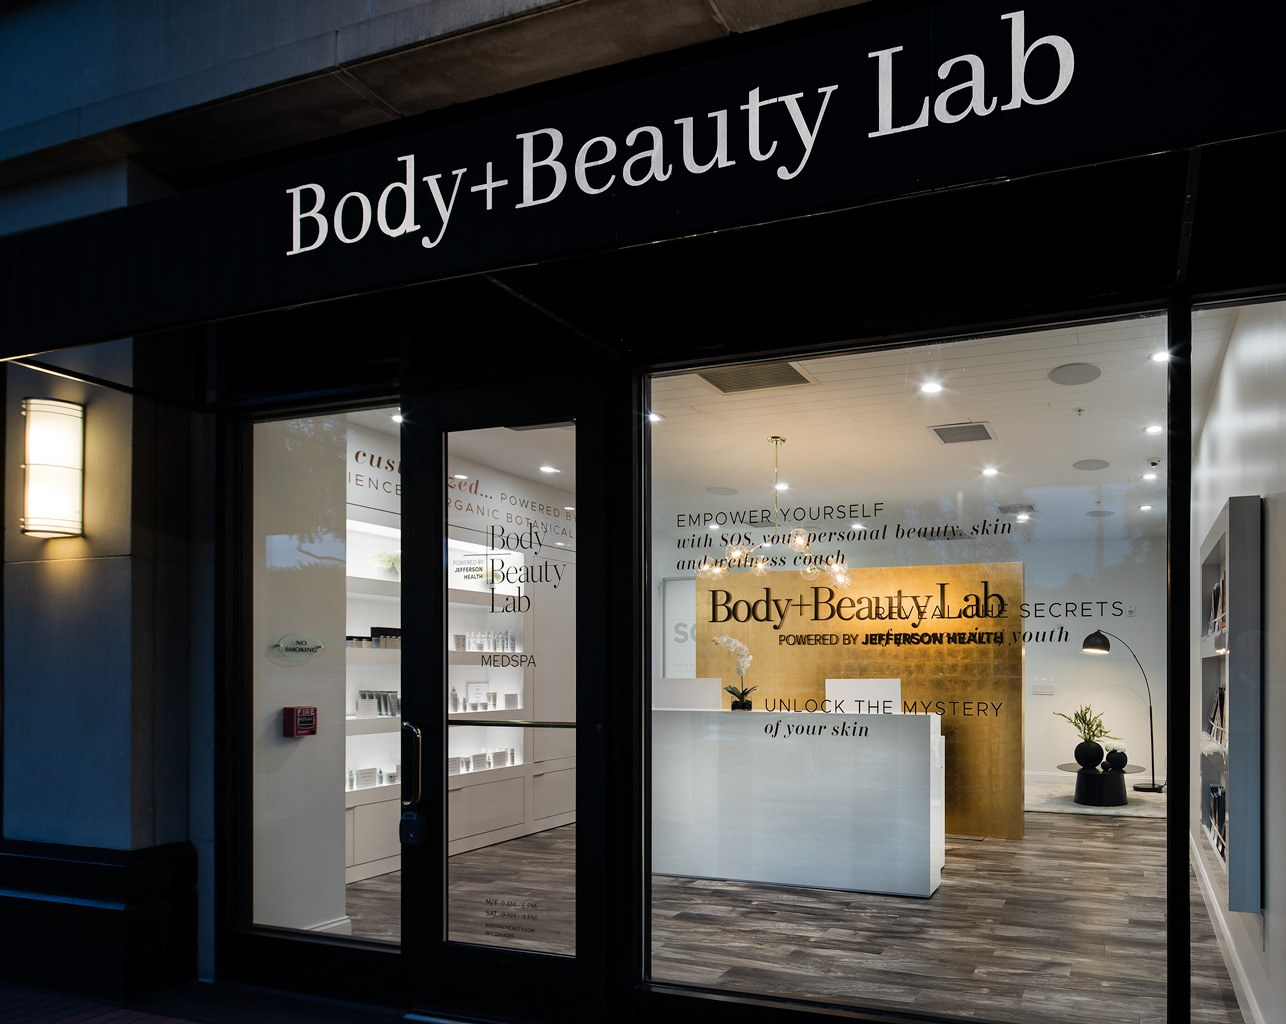 Body+Beauty Lab at The Radnor Hotel